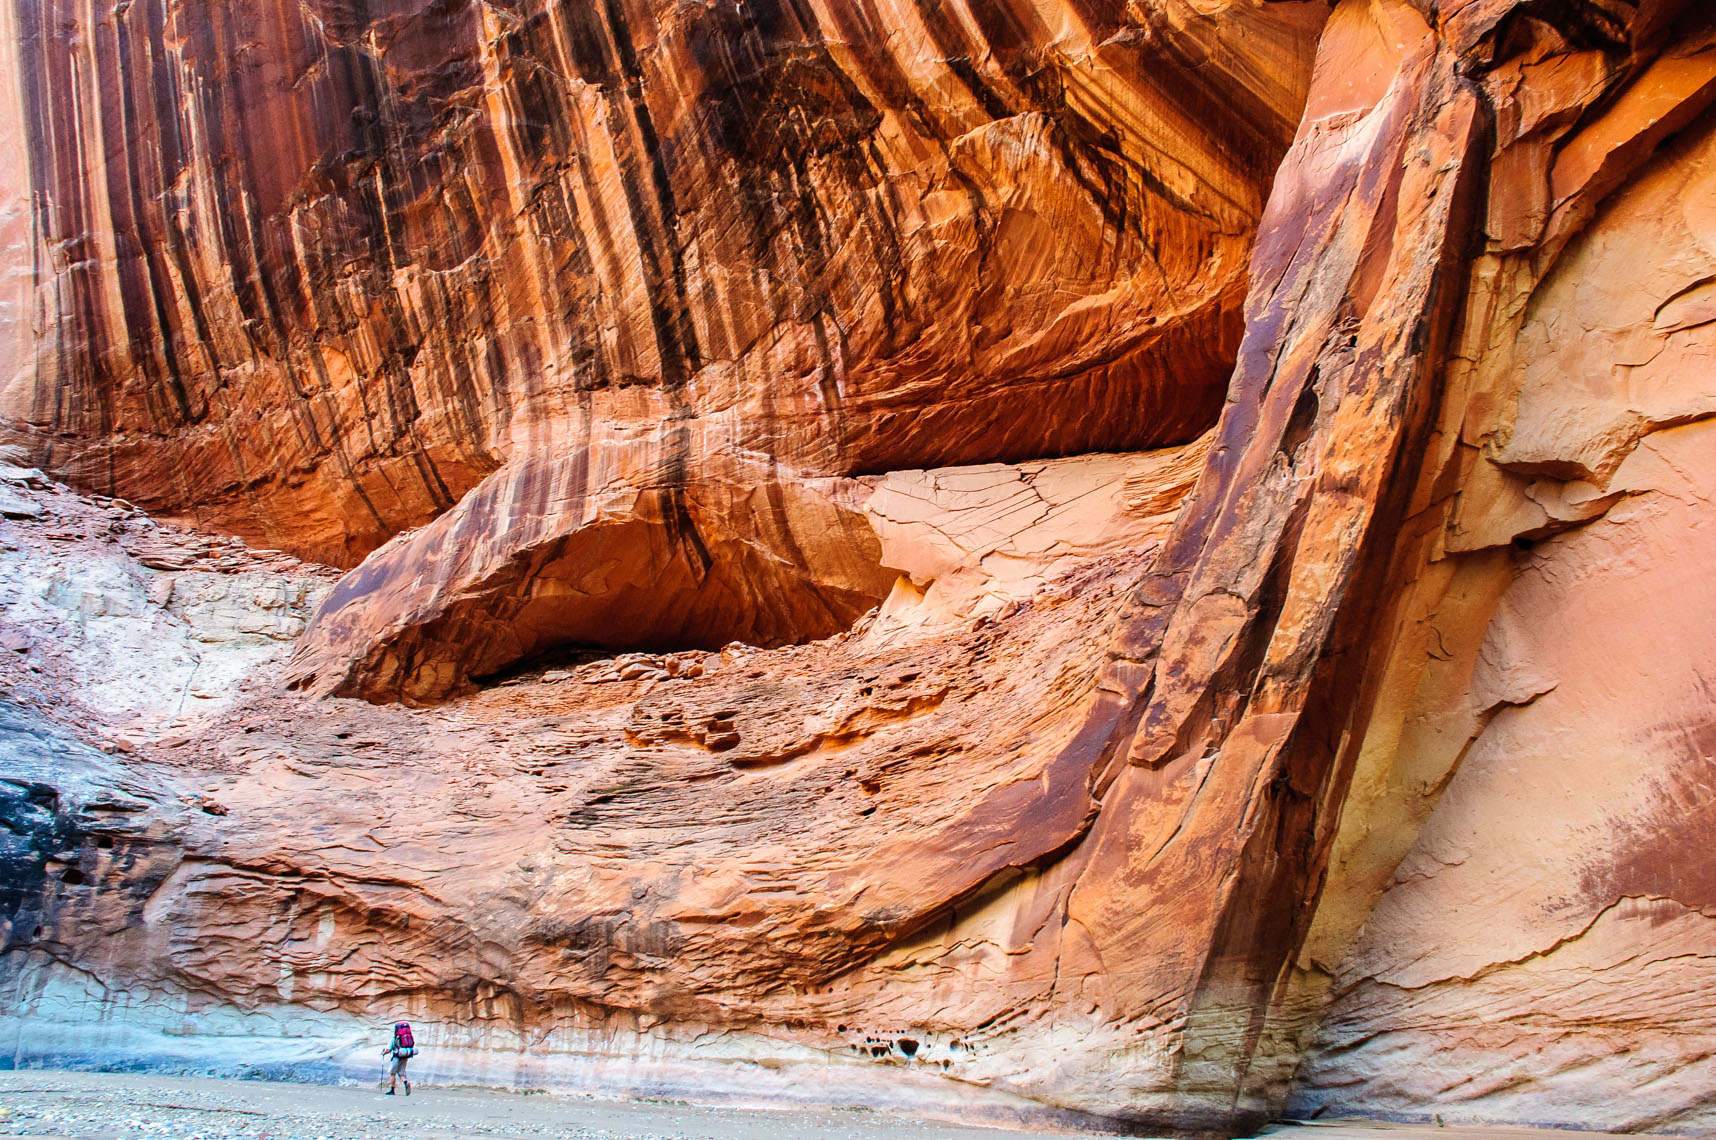 Backpacking in Paria Canyon